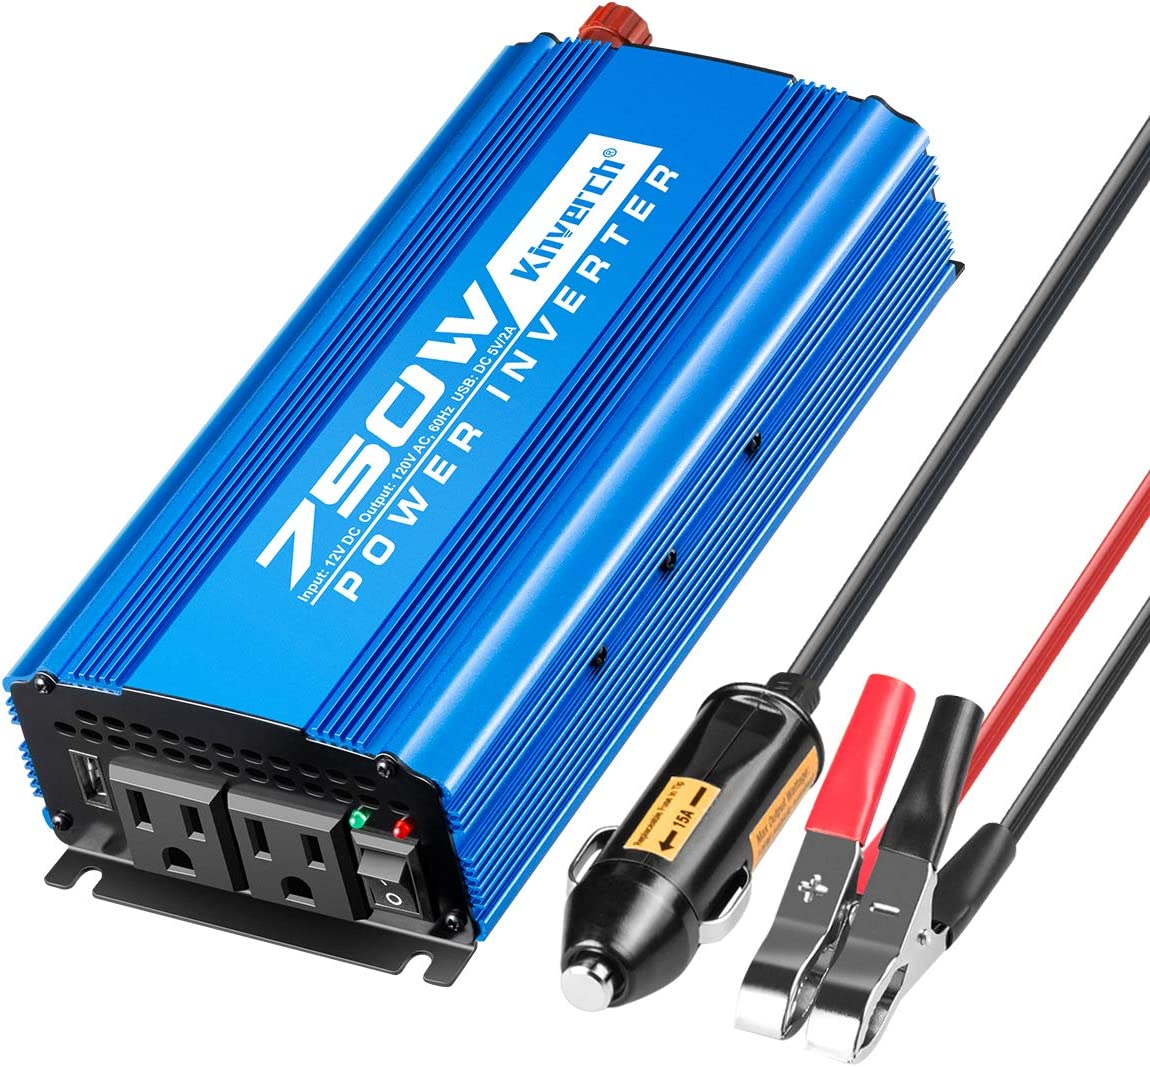 Kinverch 750W Continuous 1500W Peak Power Inverter DC 12V to 110V Car Converter AC with 2 AC Outlets and 2A USB Charging Port